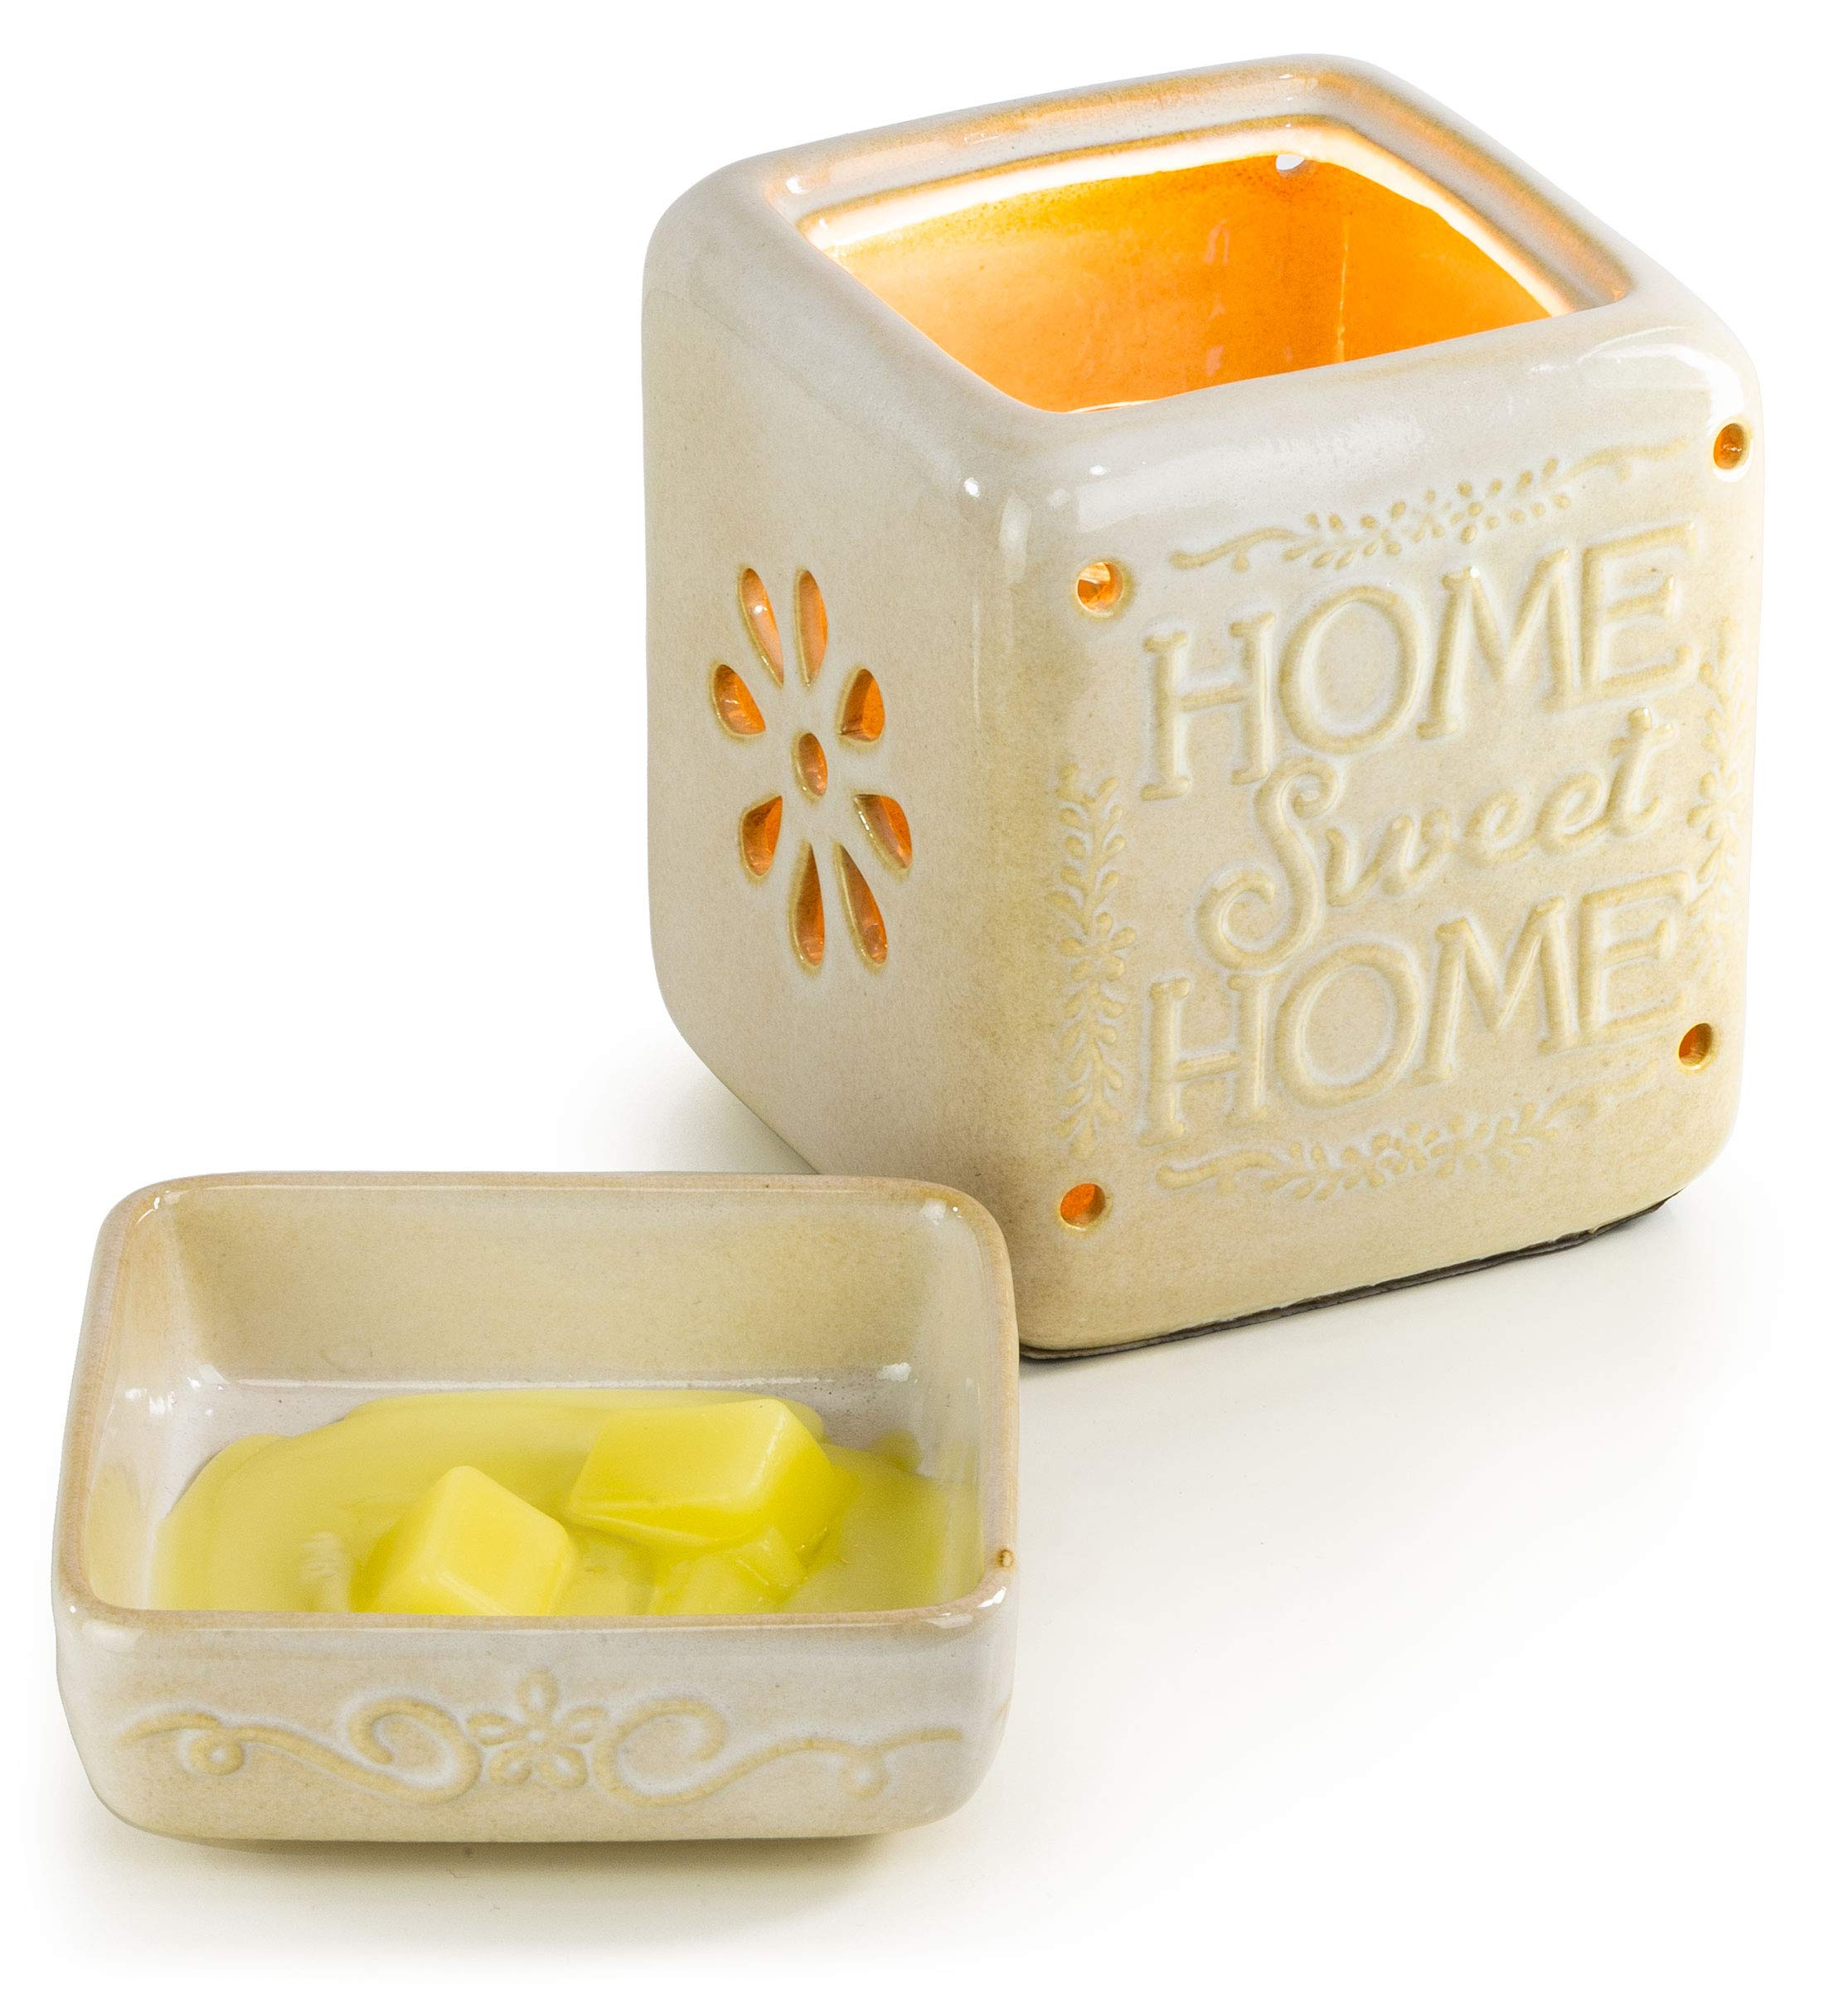 Ceramic Fragrance Warmer (Home Sweet Home) by VP Home (Image #4)